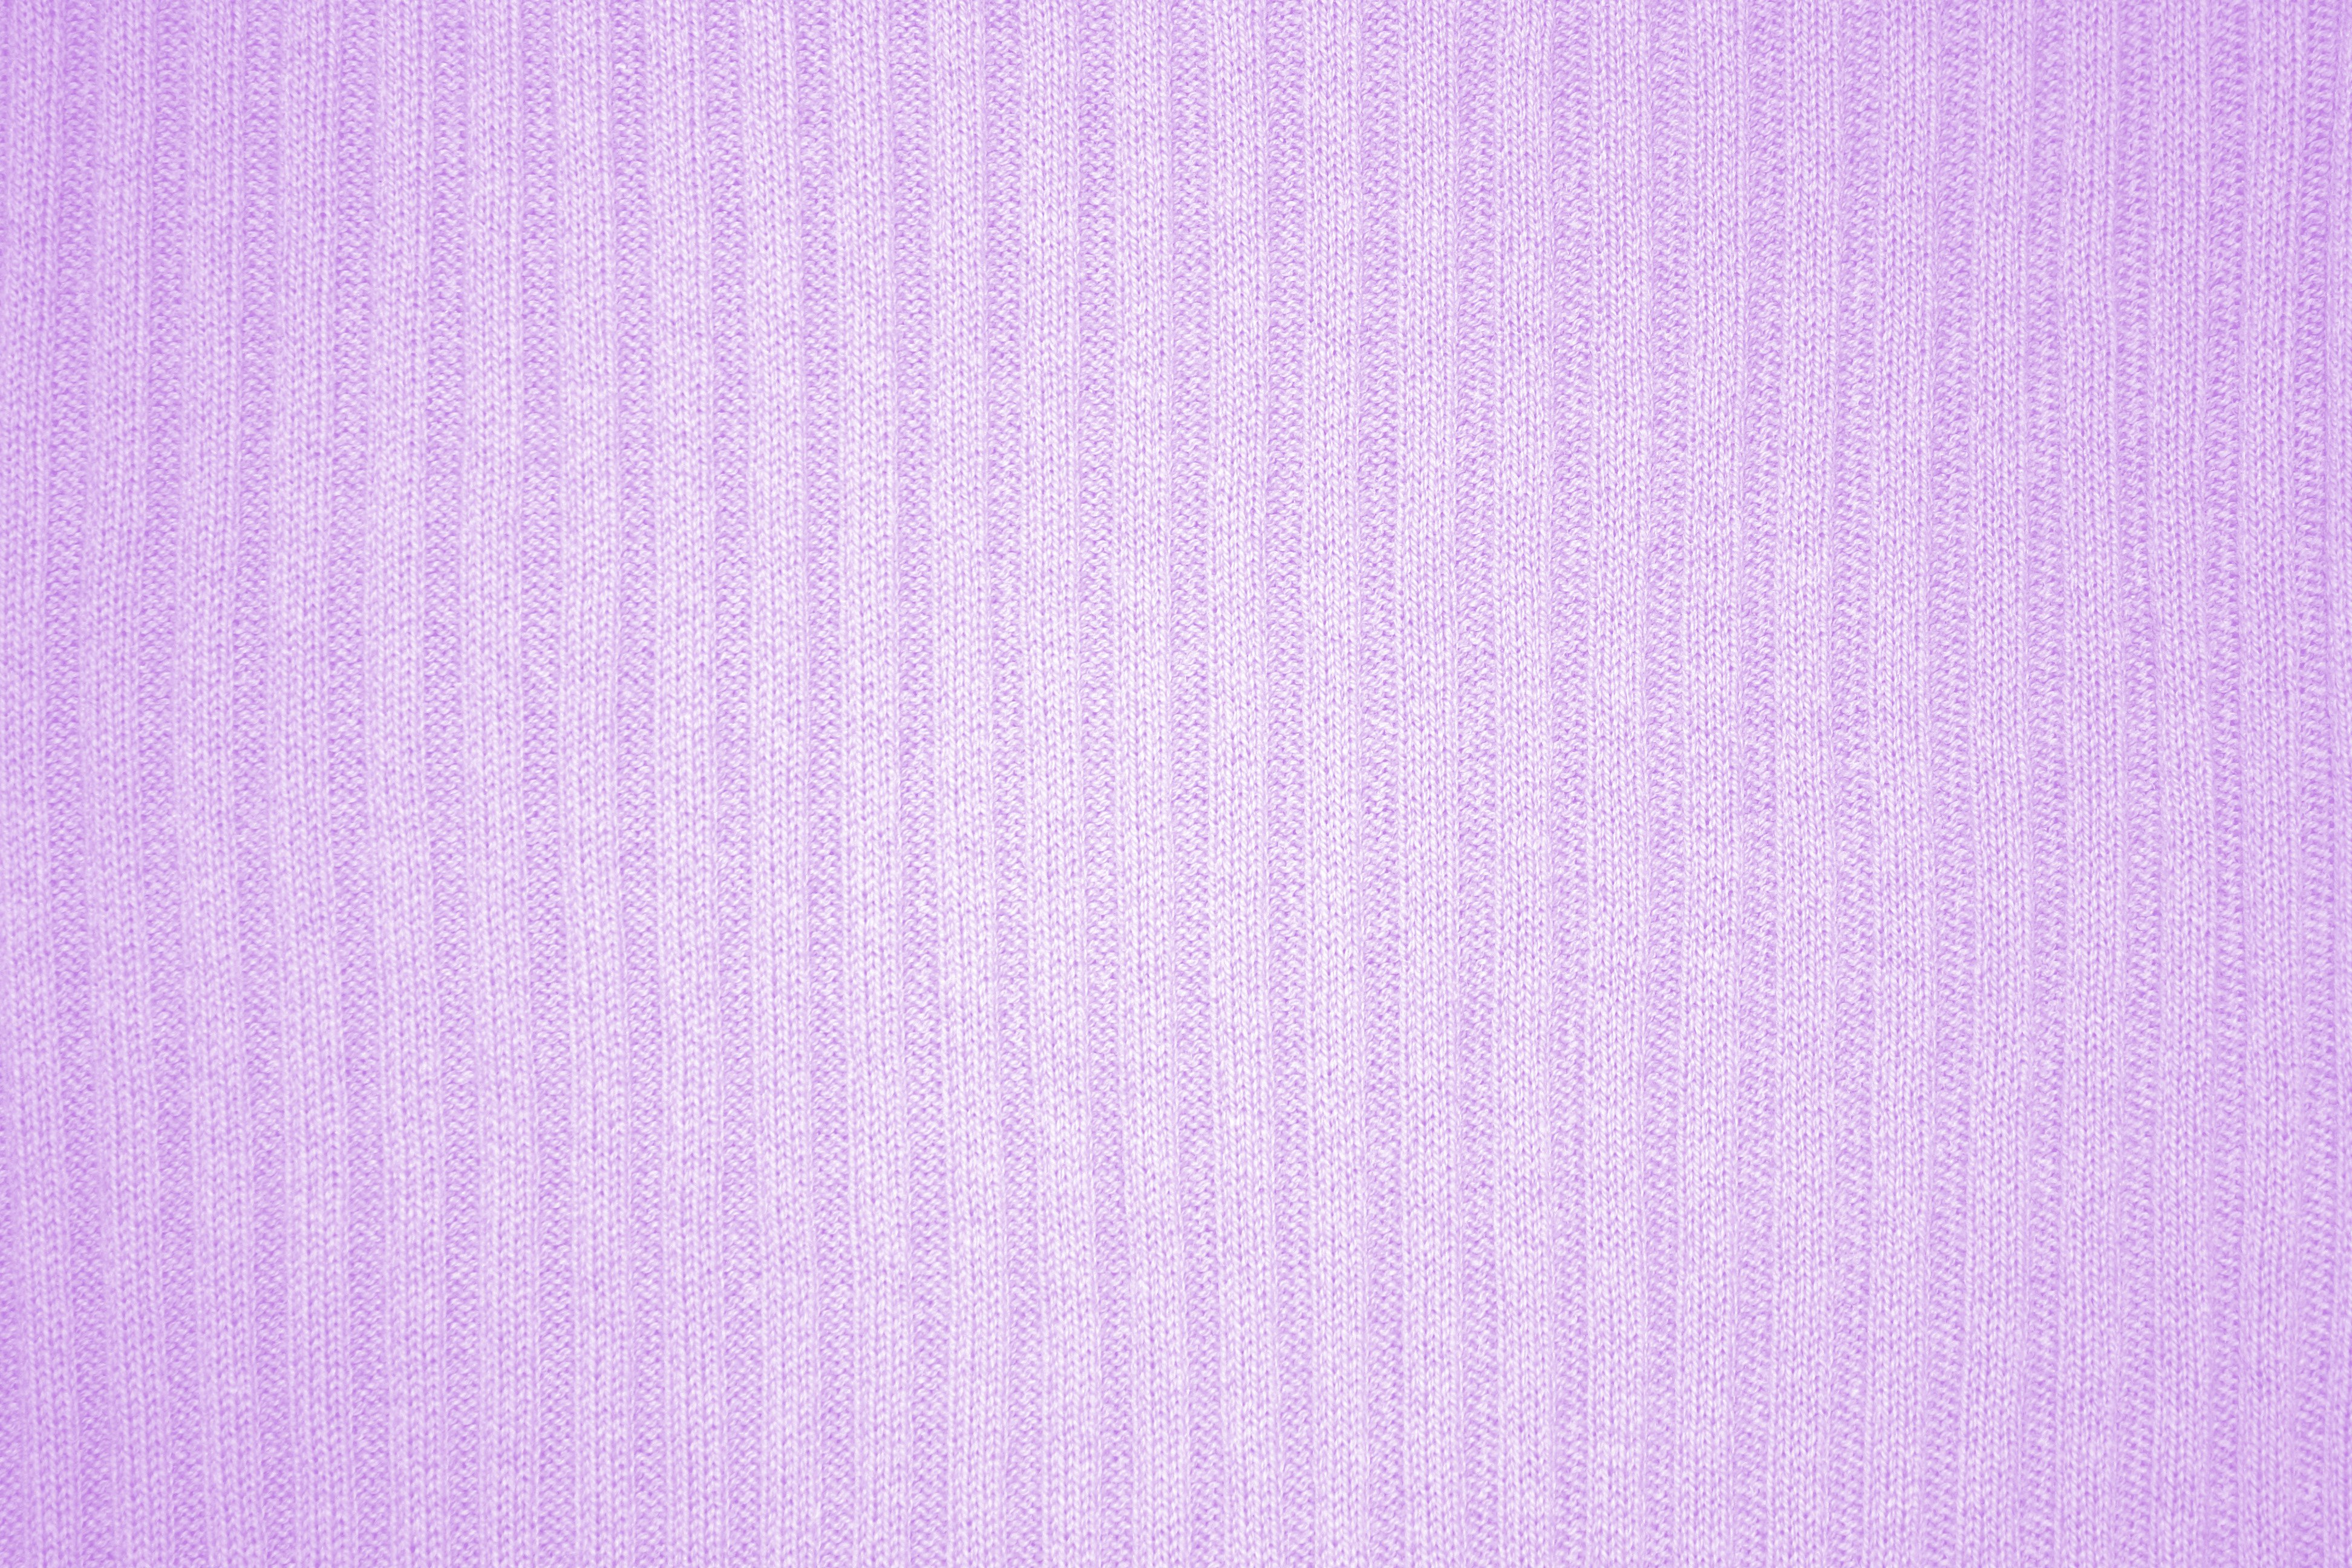 lavender background solid - HD 3888×2592